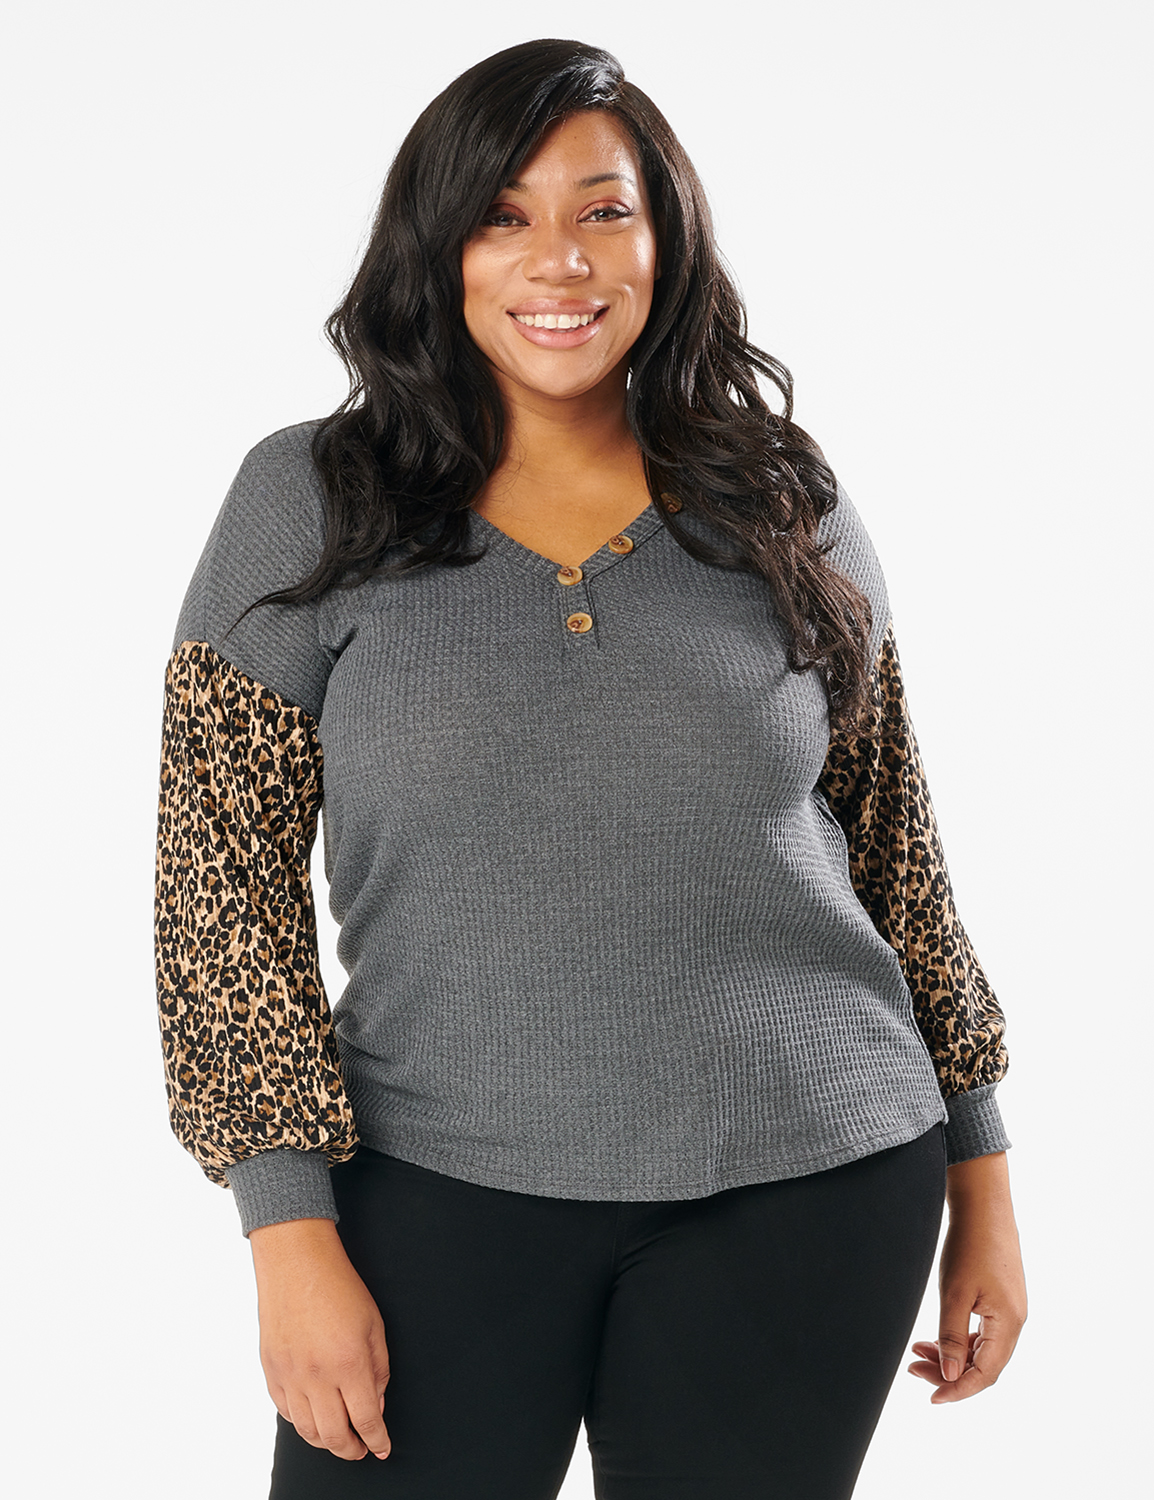 Y Henley Mixed Animal Thermal Knit Top - Plus -Grey - Front